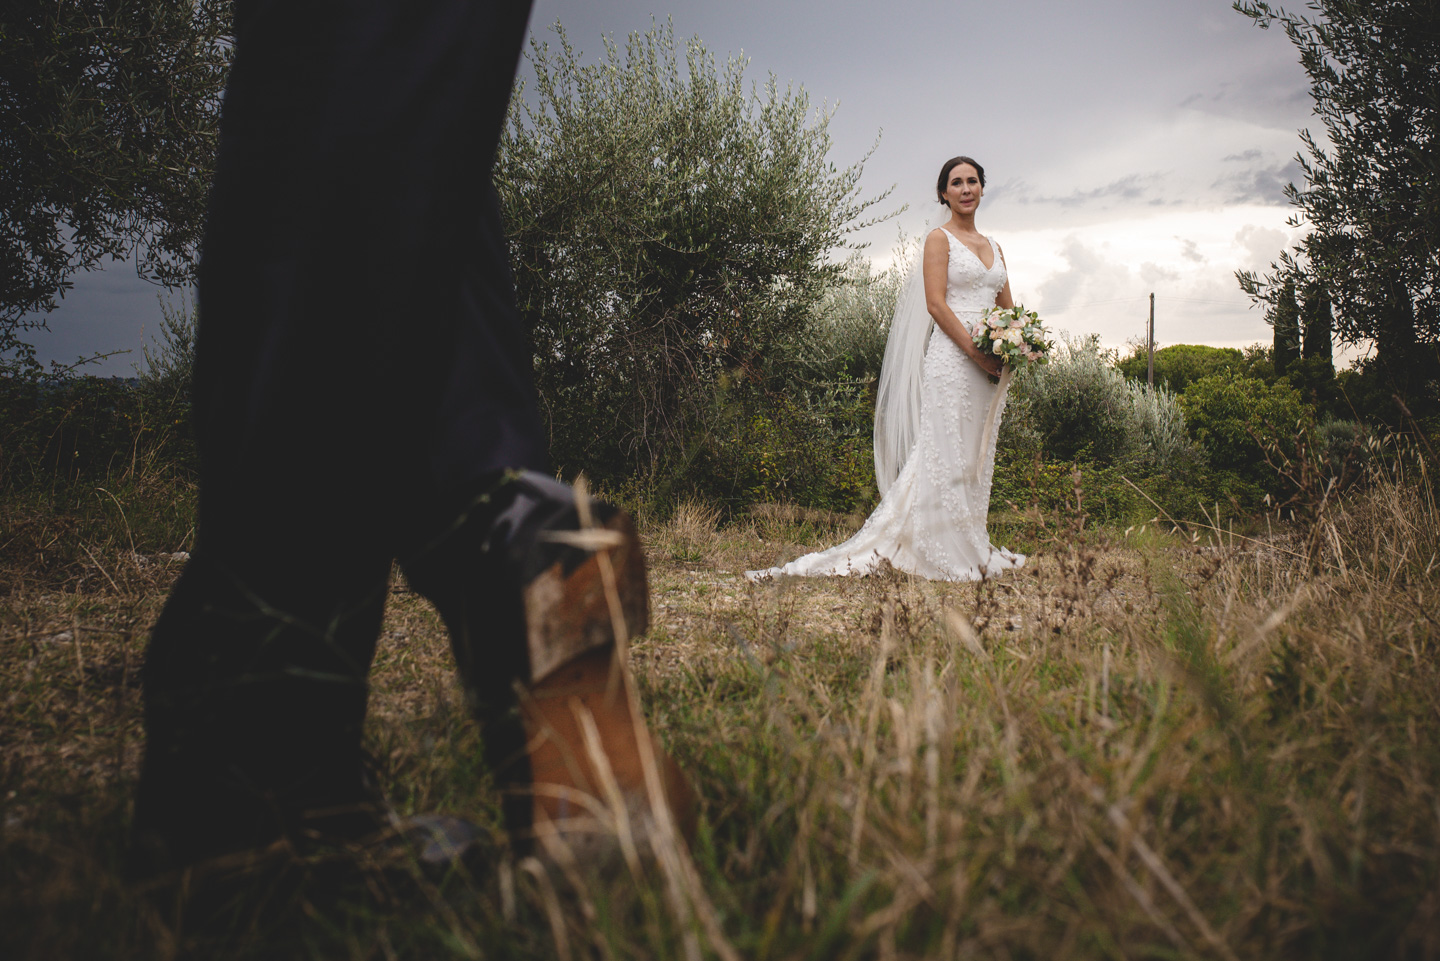 Wedding Photography in Chianti Tuscany